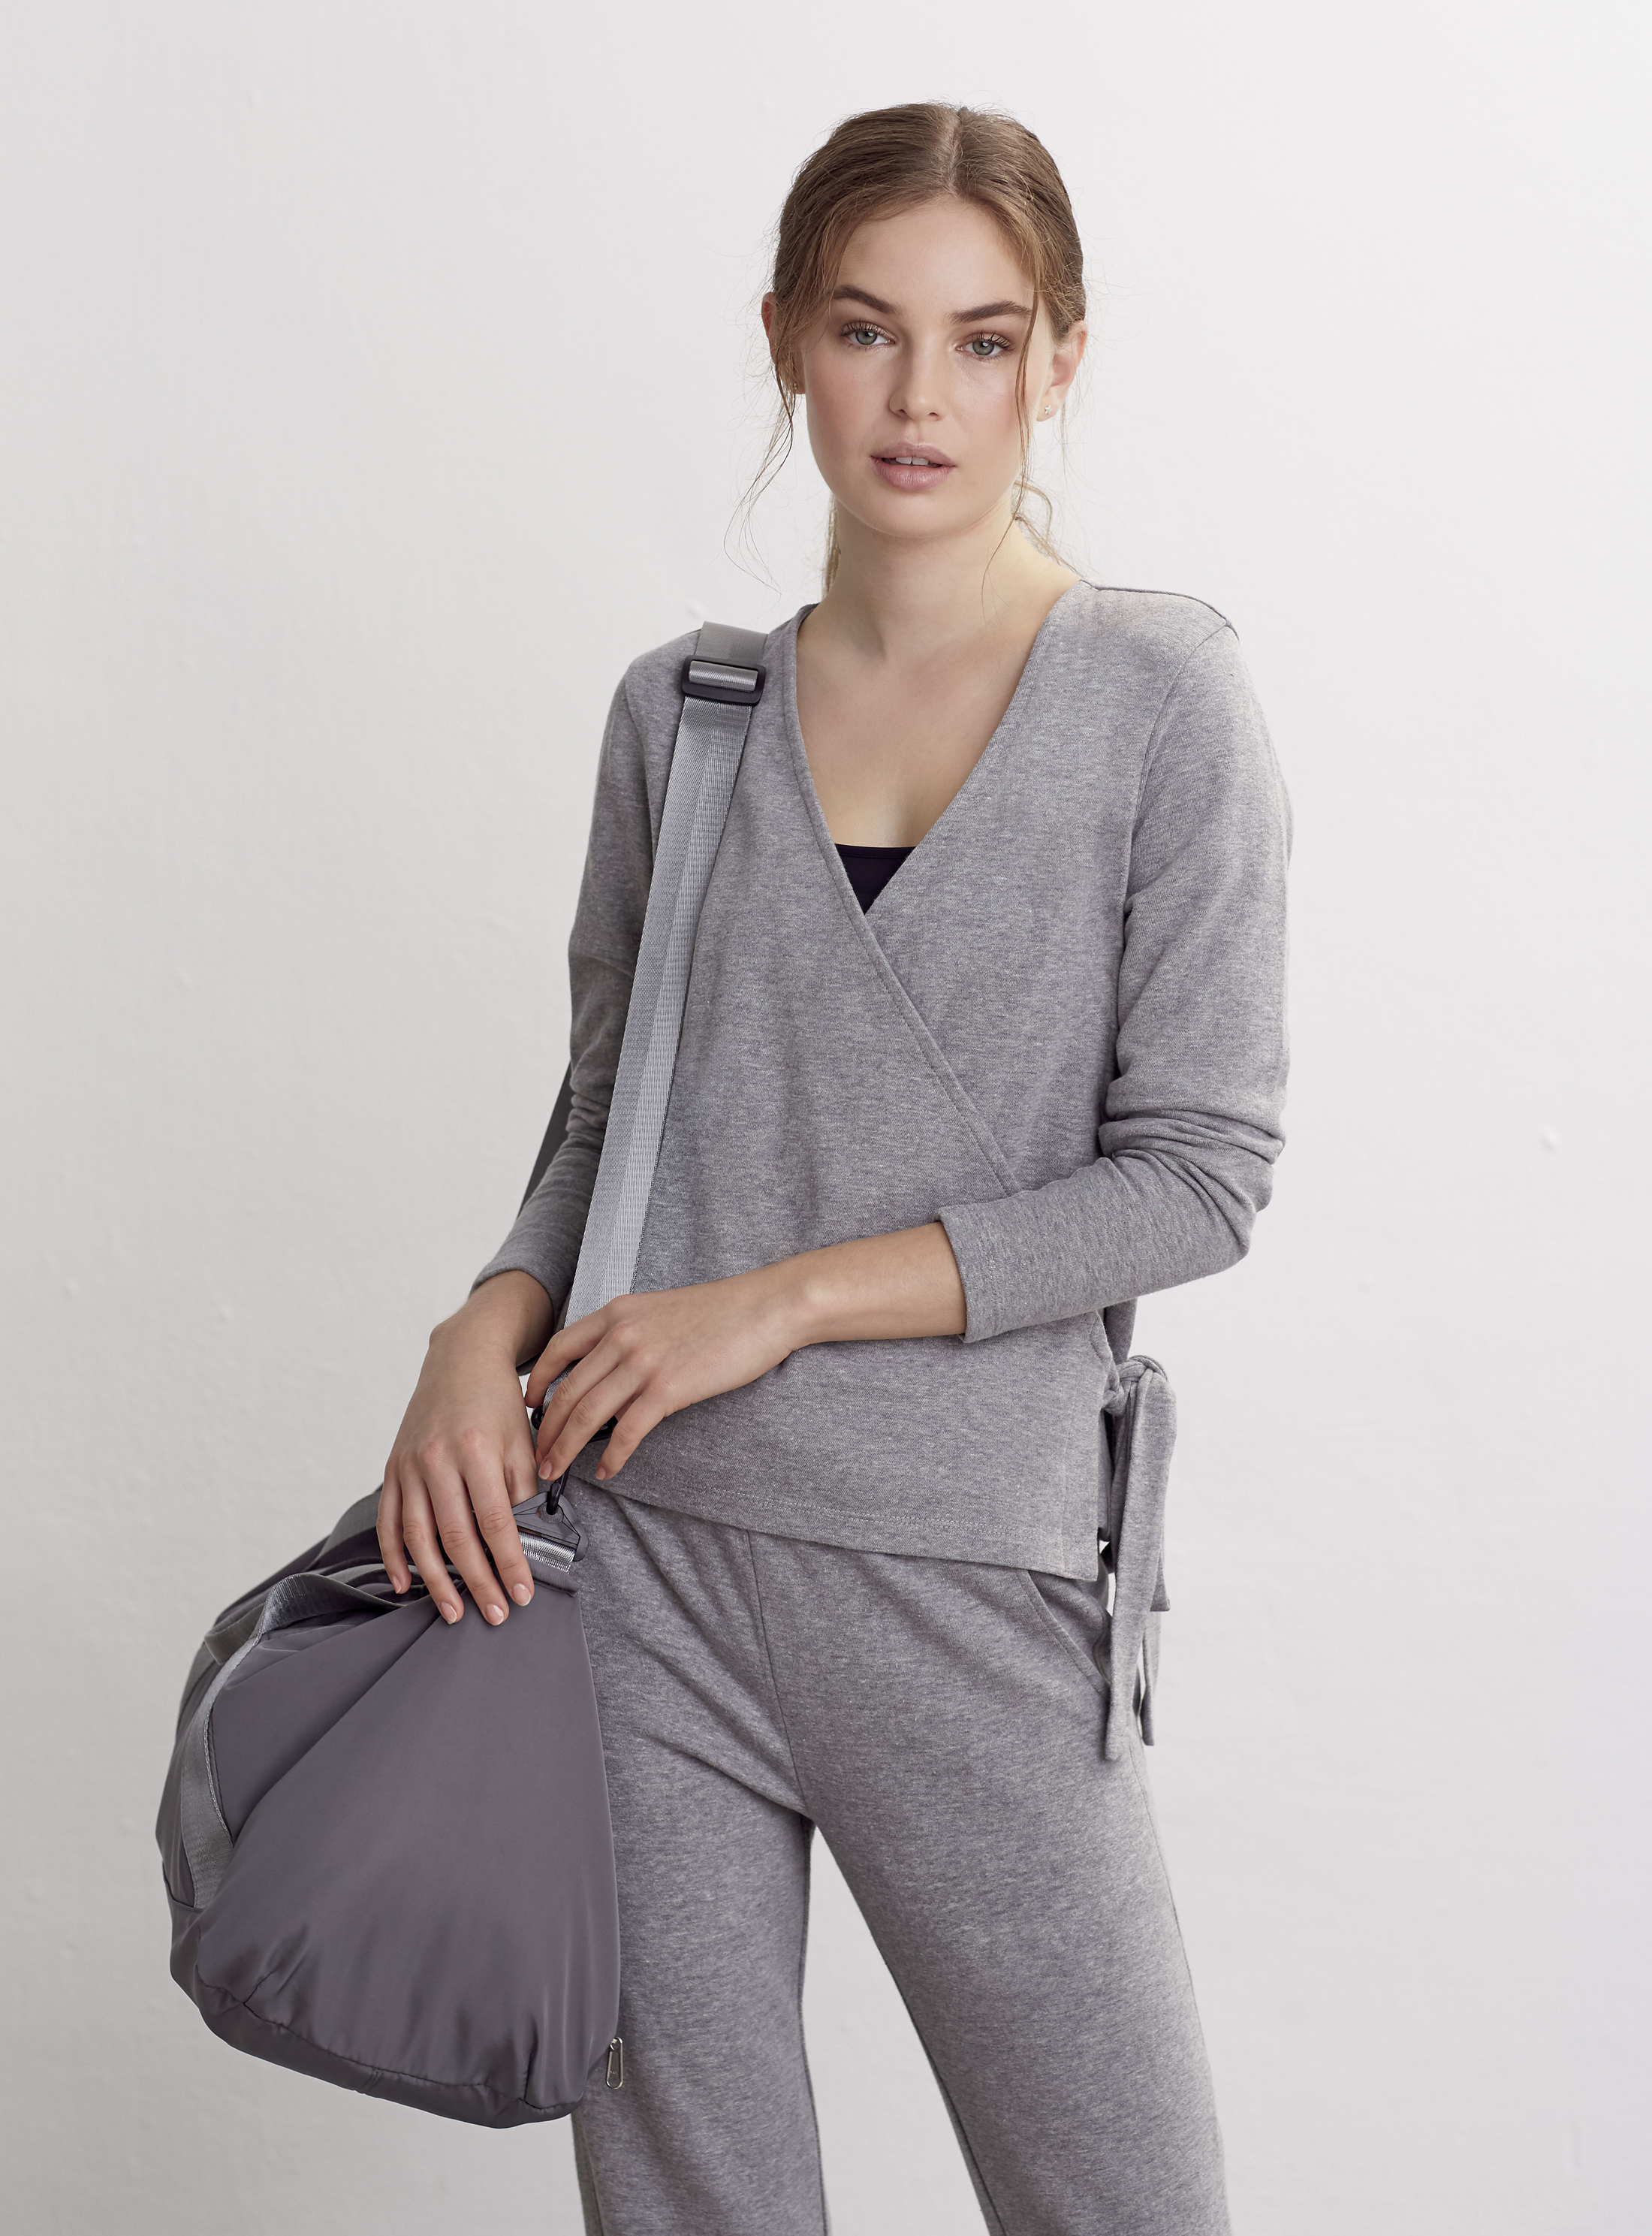 model wearing FatFace Athleisure Marnie Ballet Wrap Top; Athleisure Esme Tapered Joggers